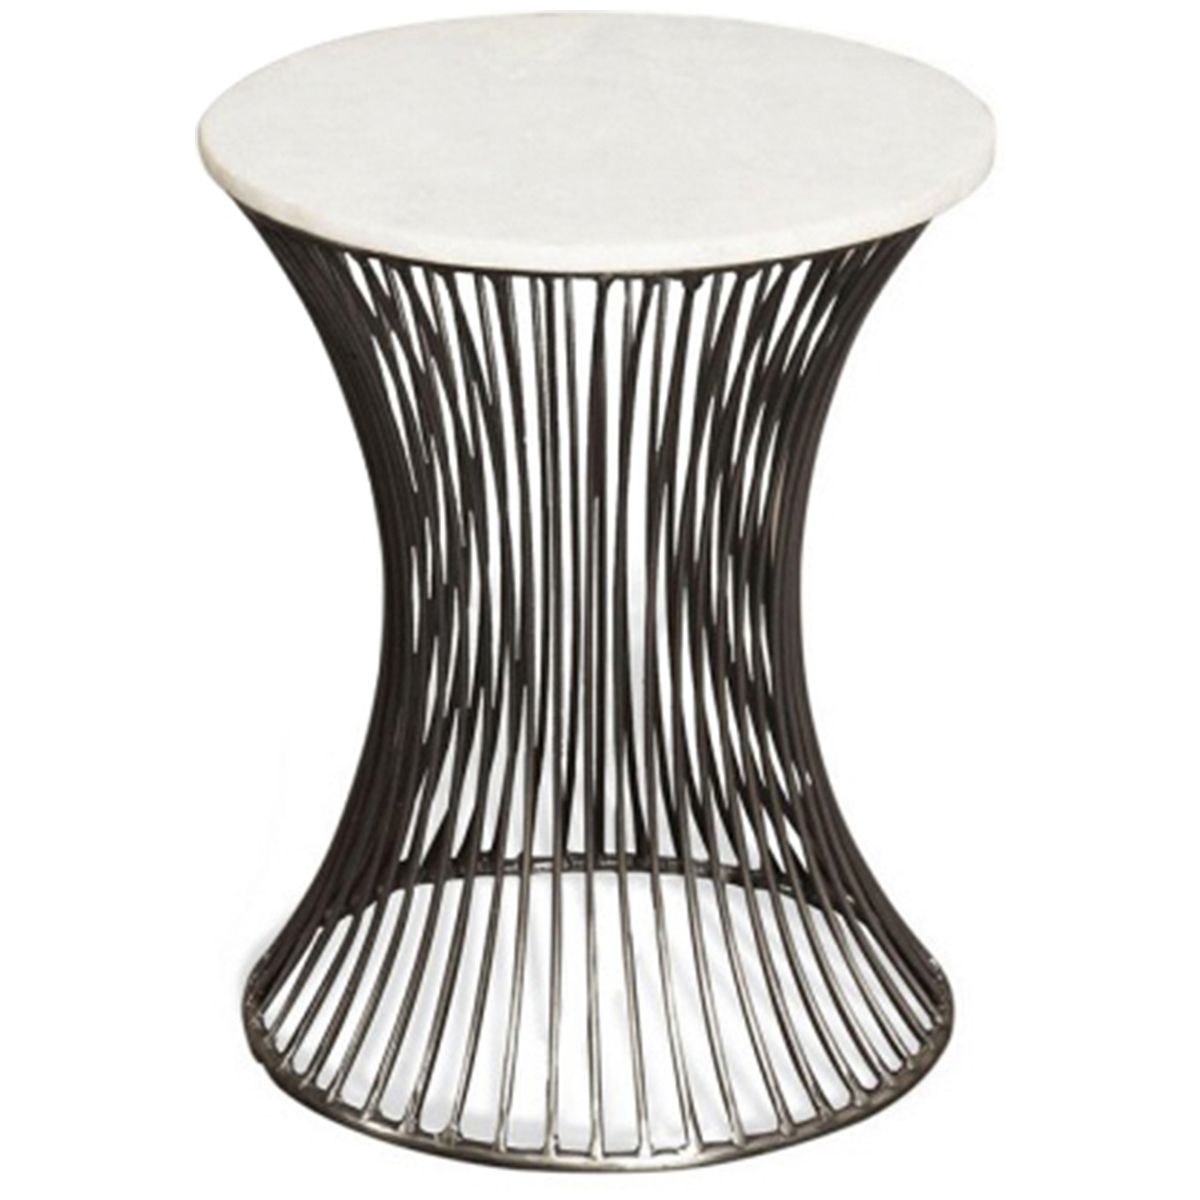 end tables living room table zebi accent furniture gloss side home furnishings edmonton round wicker pier one rugs decorative covers hobby lobby console silver cabinet modern